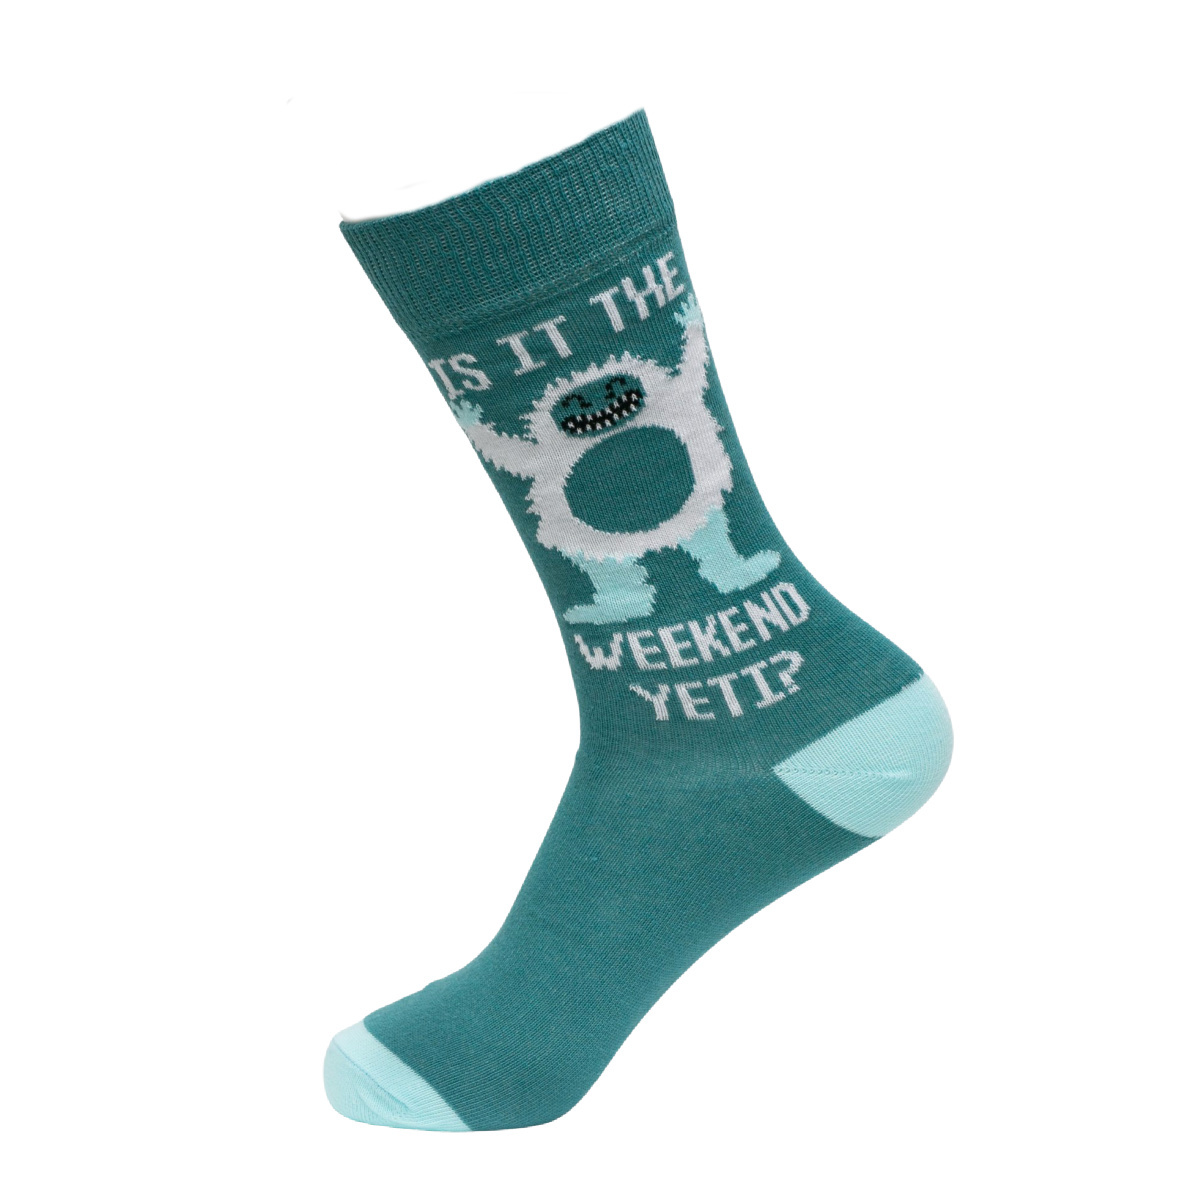 Socks Atomica Socks Atomica Weekend Yeti